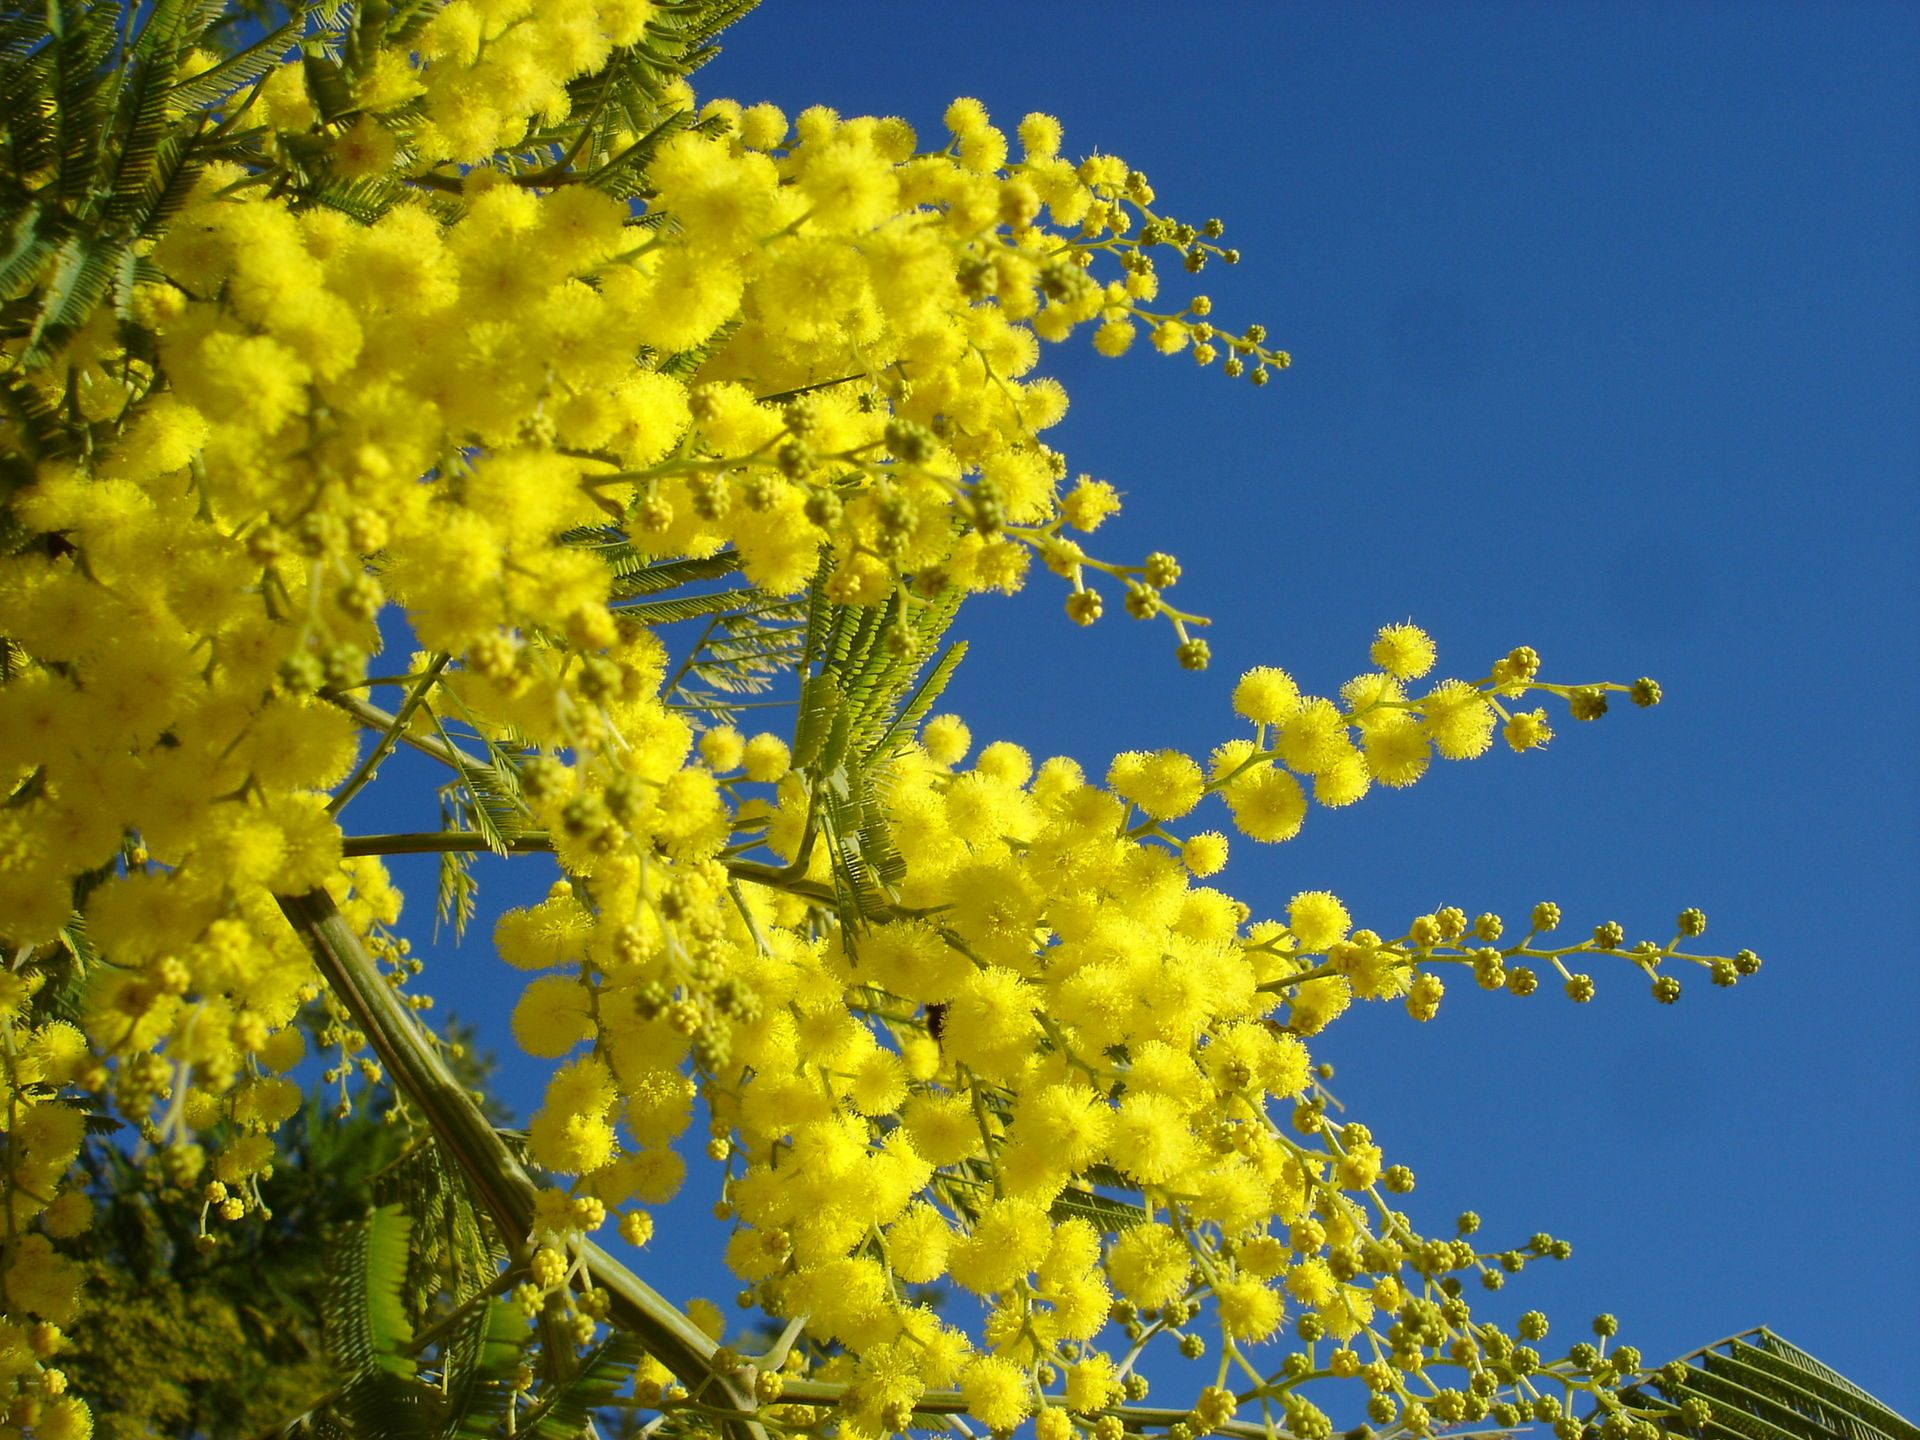 Yellow Mimosa Is The Symbol Of Iwd In Italy Cottage Garden Plants Cottage Garden Acacia Tree